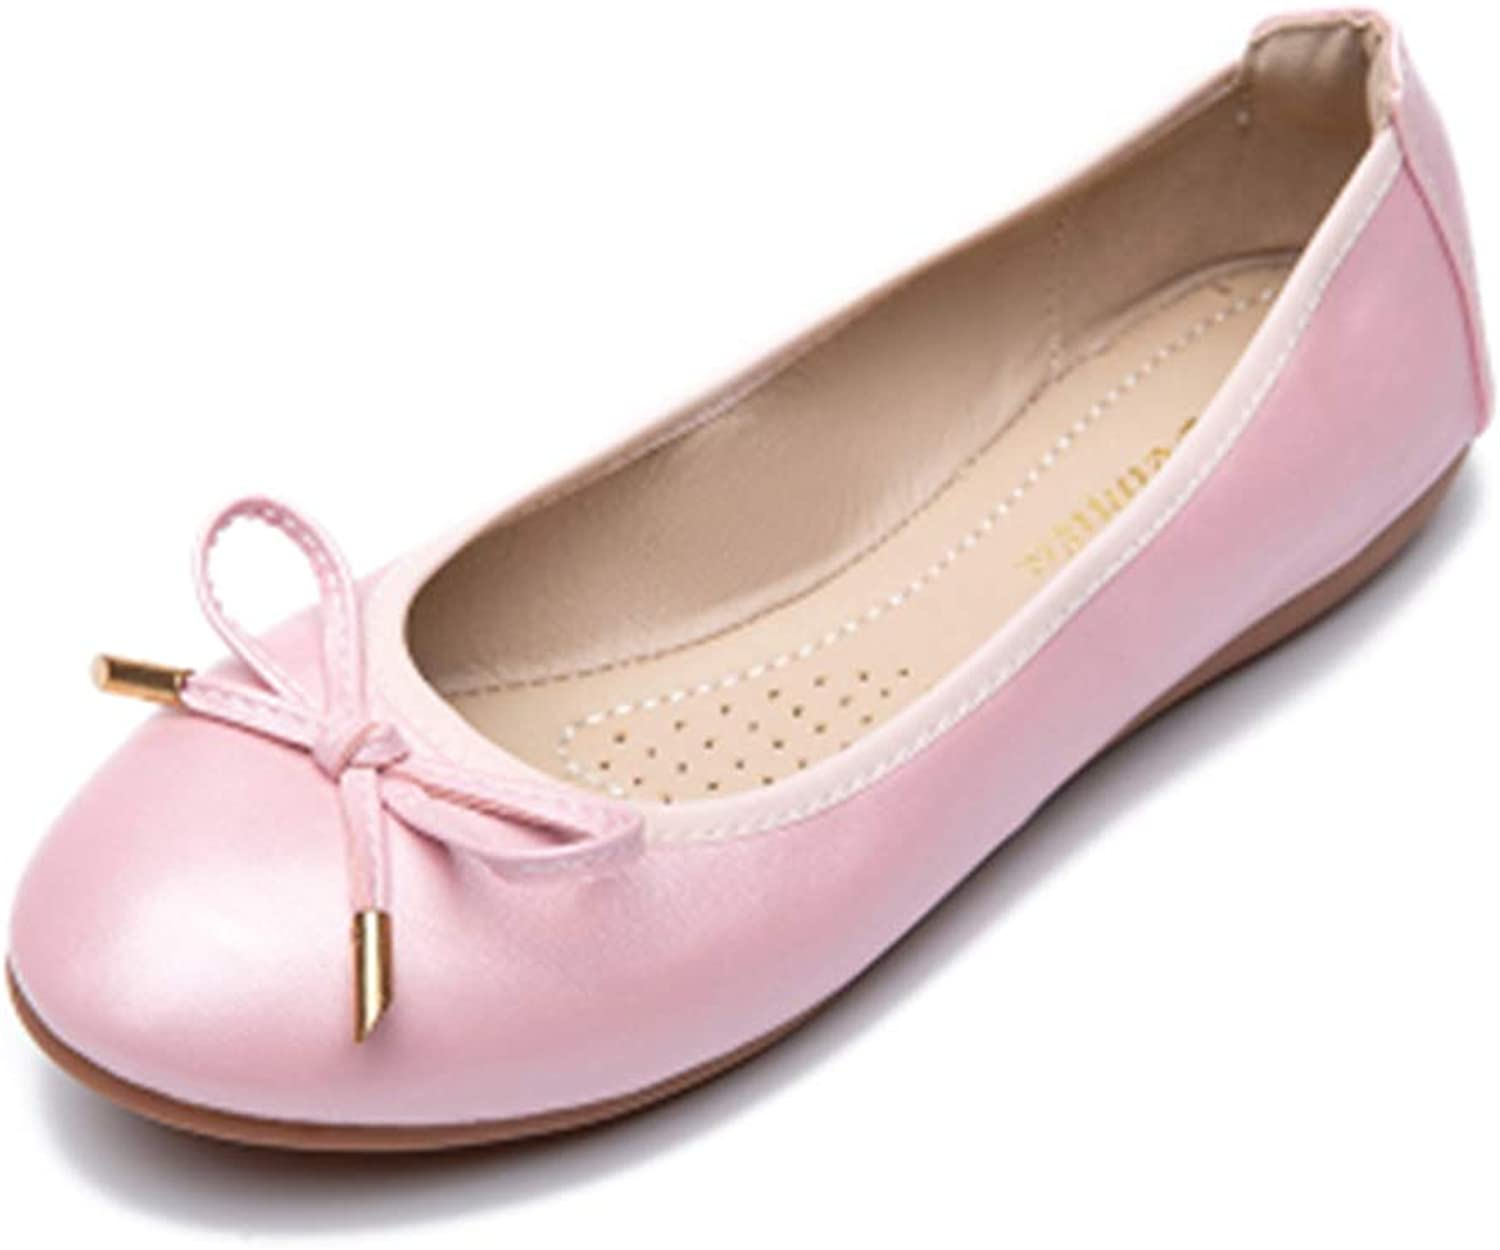 Women Solid Flats, Casual Butterfly-Knot Round Toe Slip-On Work shoes 3 colors